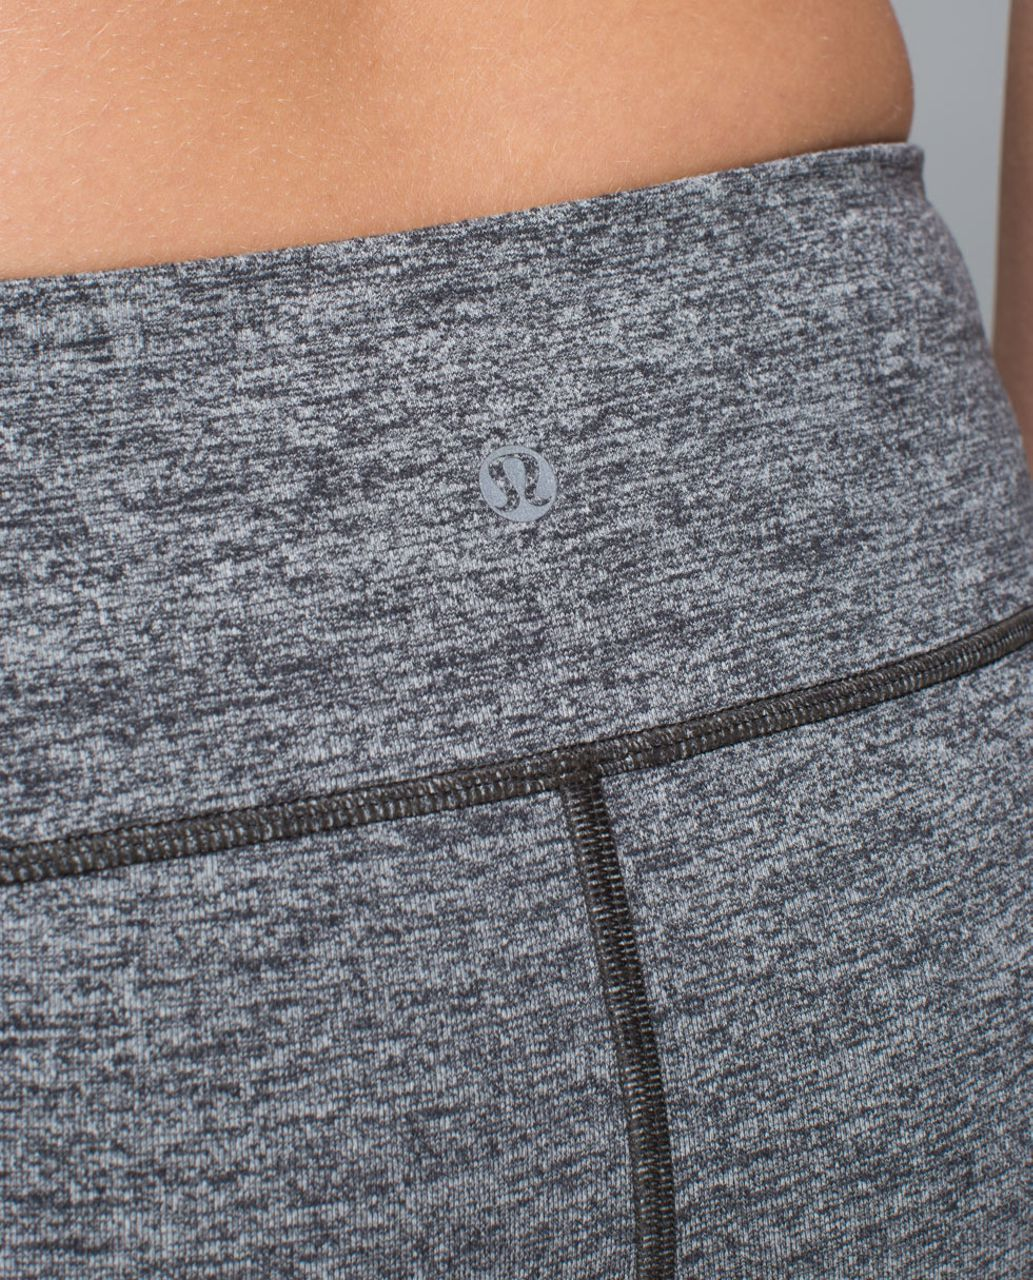 Lululemon Boogie Short - Heathered Deep Coal /  Deep Coal